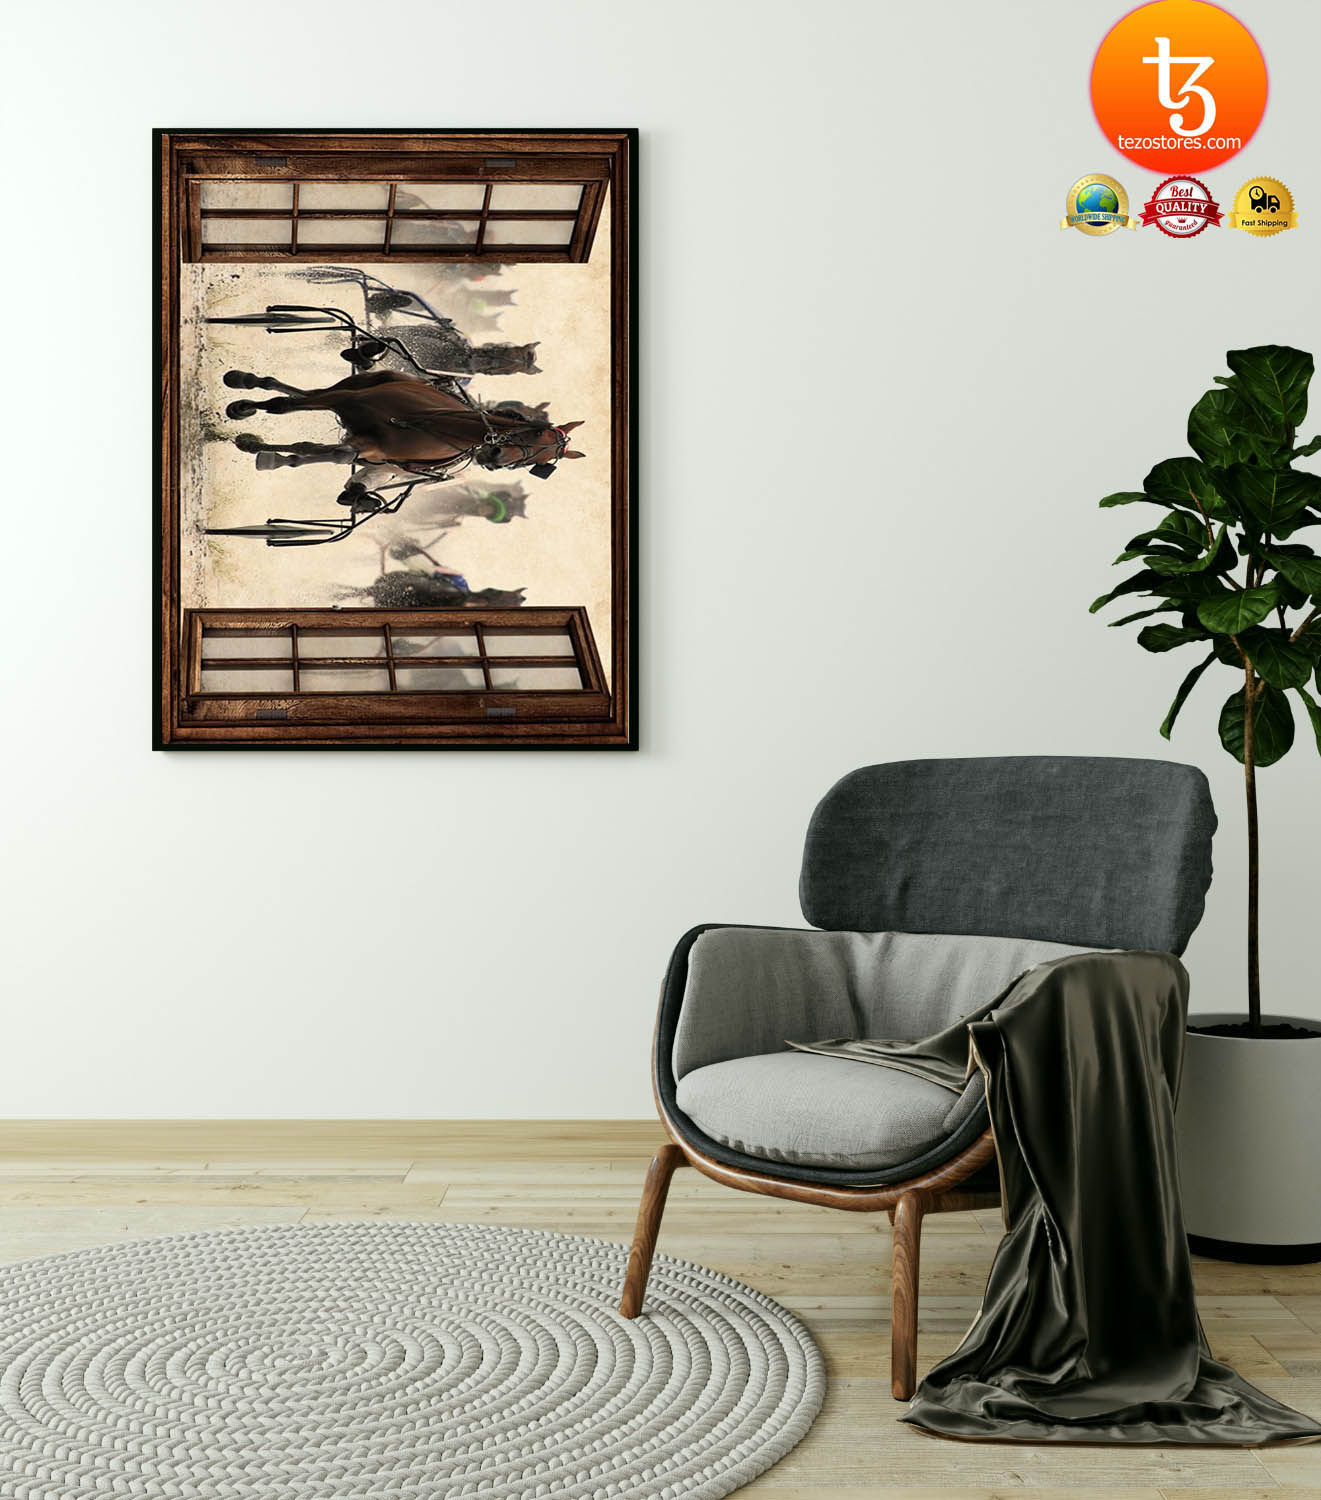 Harness racing view window poster 19